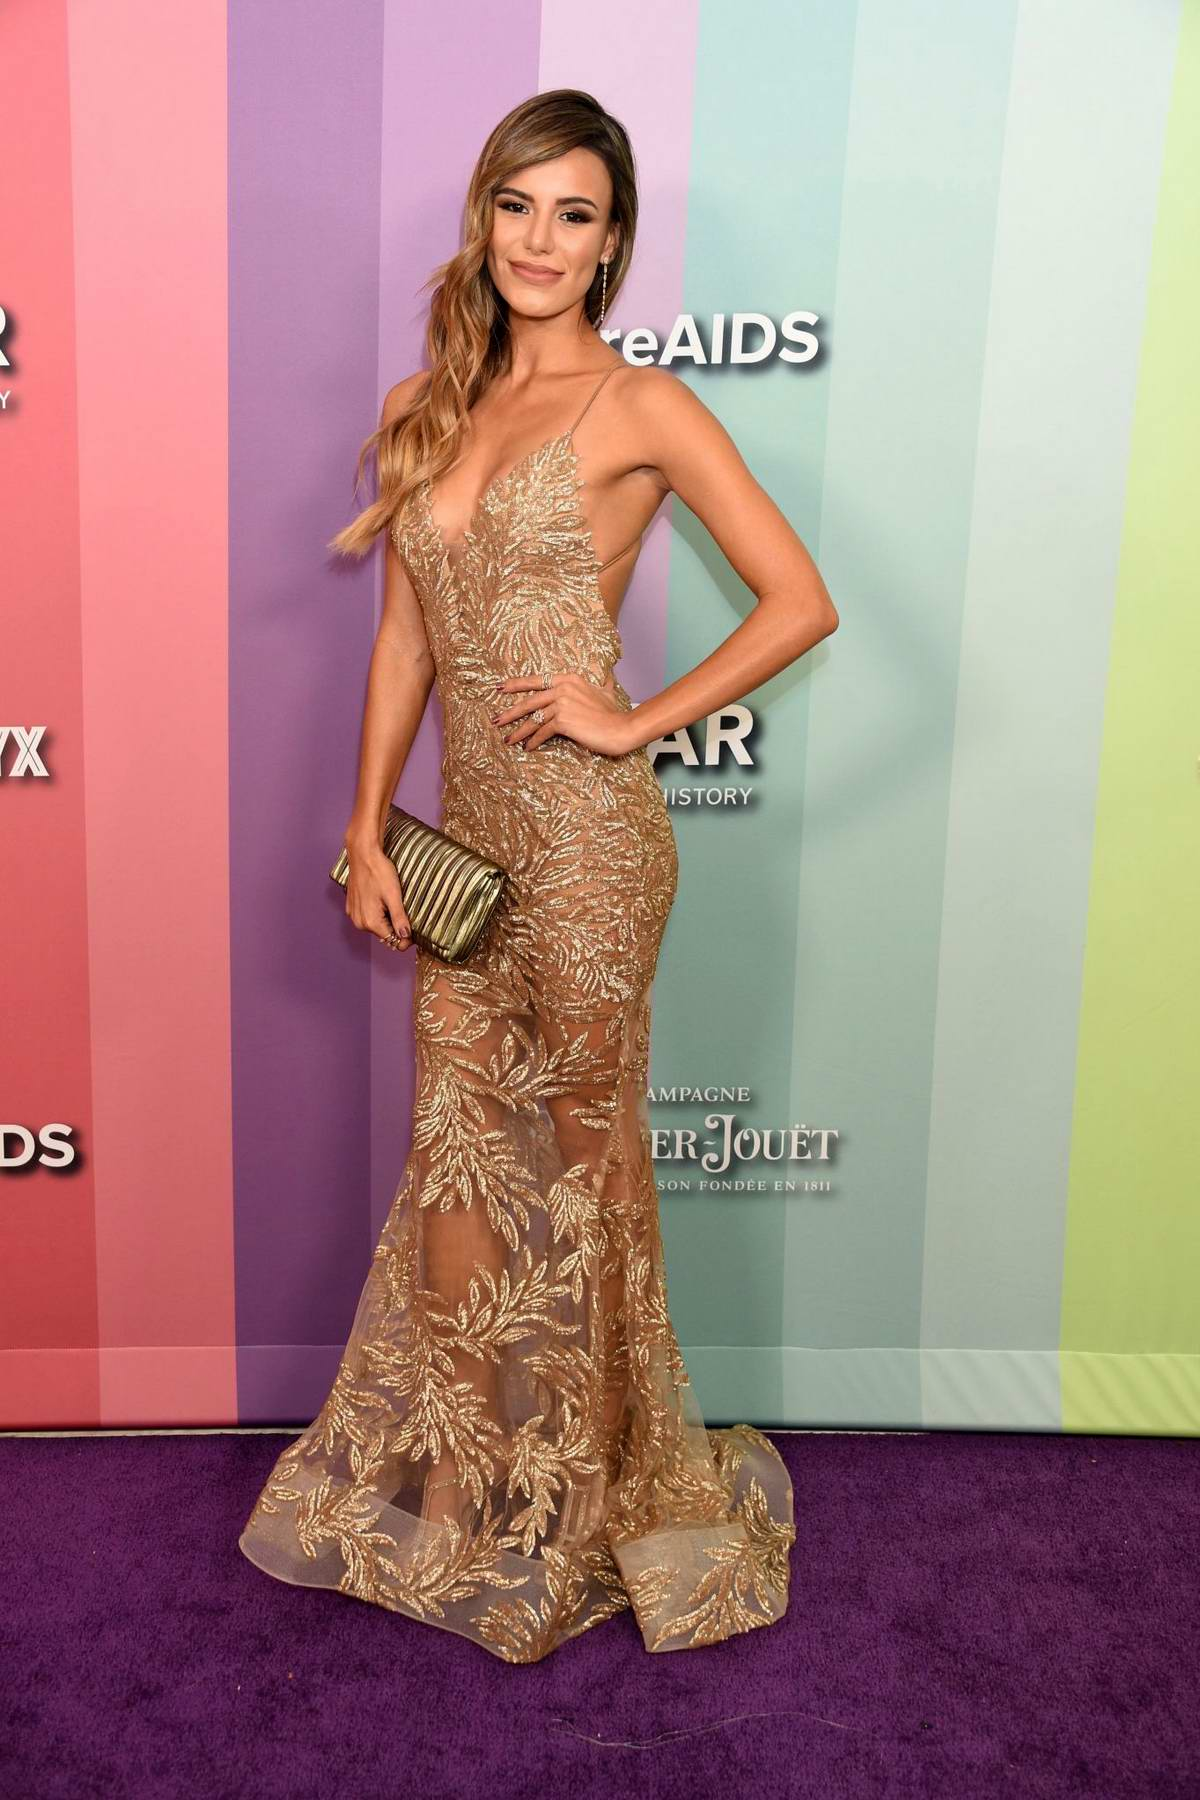 Madison Reed attends the 2019 amfAR Inspiration Gala at Milk Studios in Los Angeles